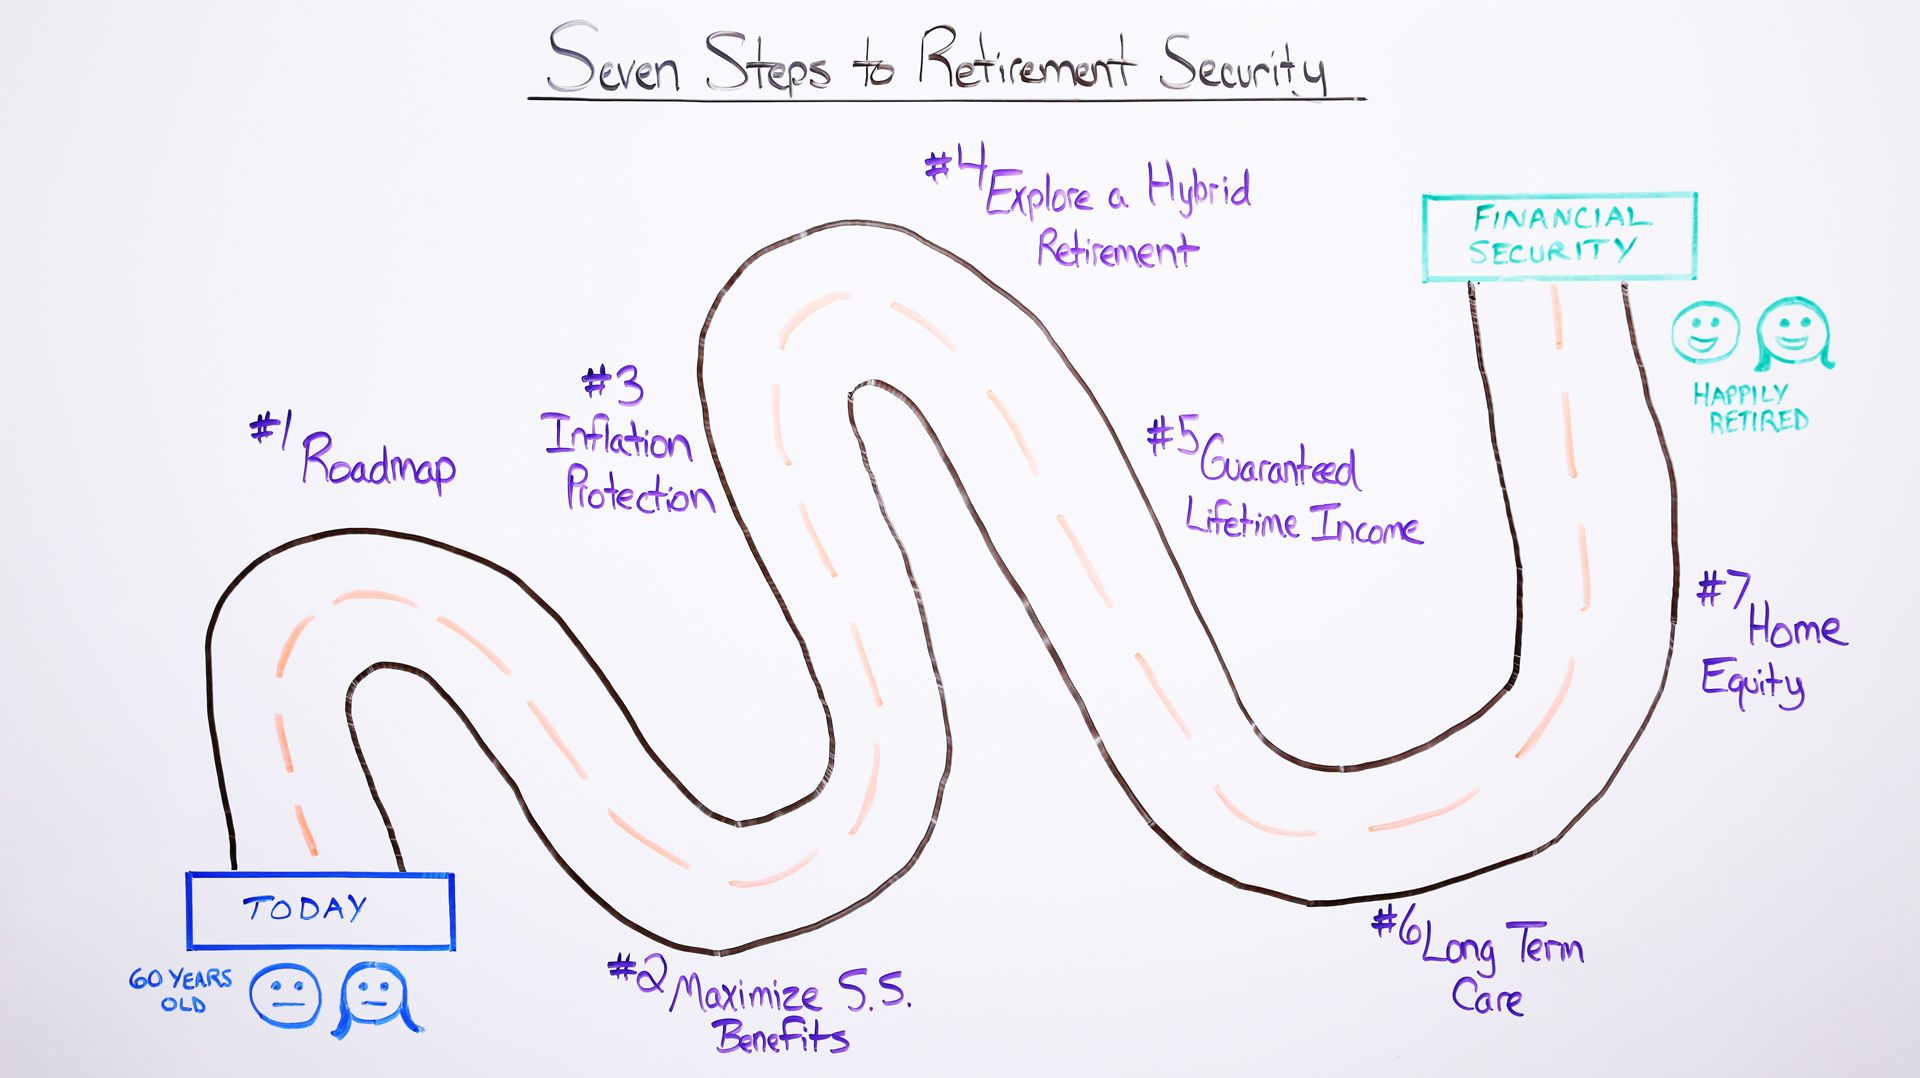 Seven Steps to Retirement Security Tom Hegna